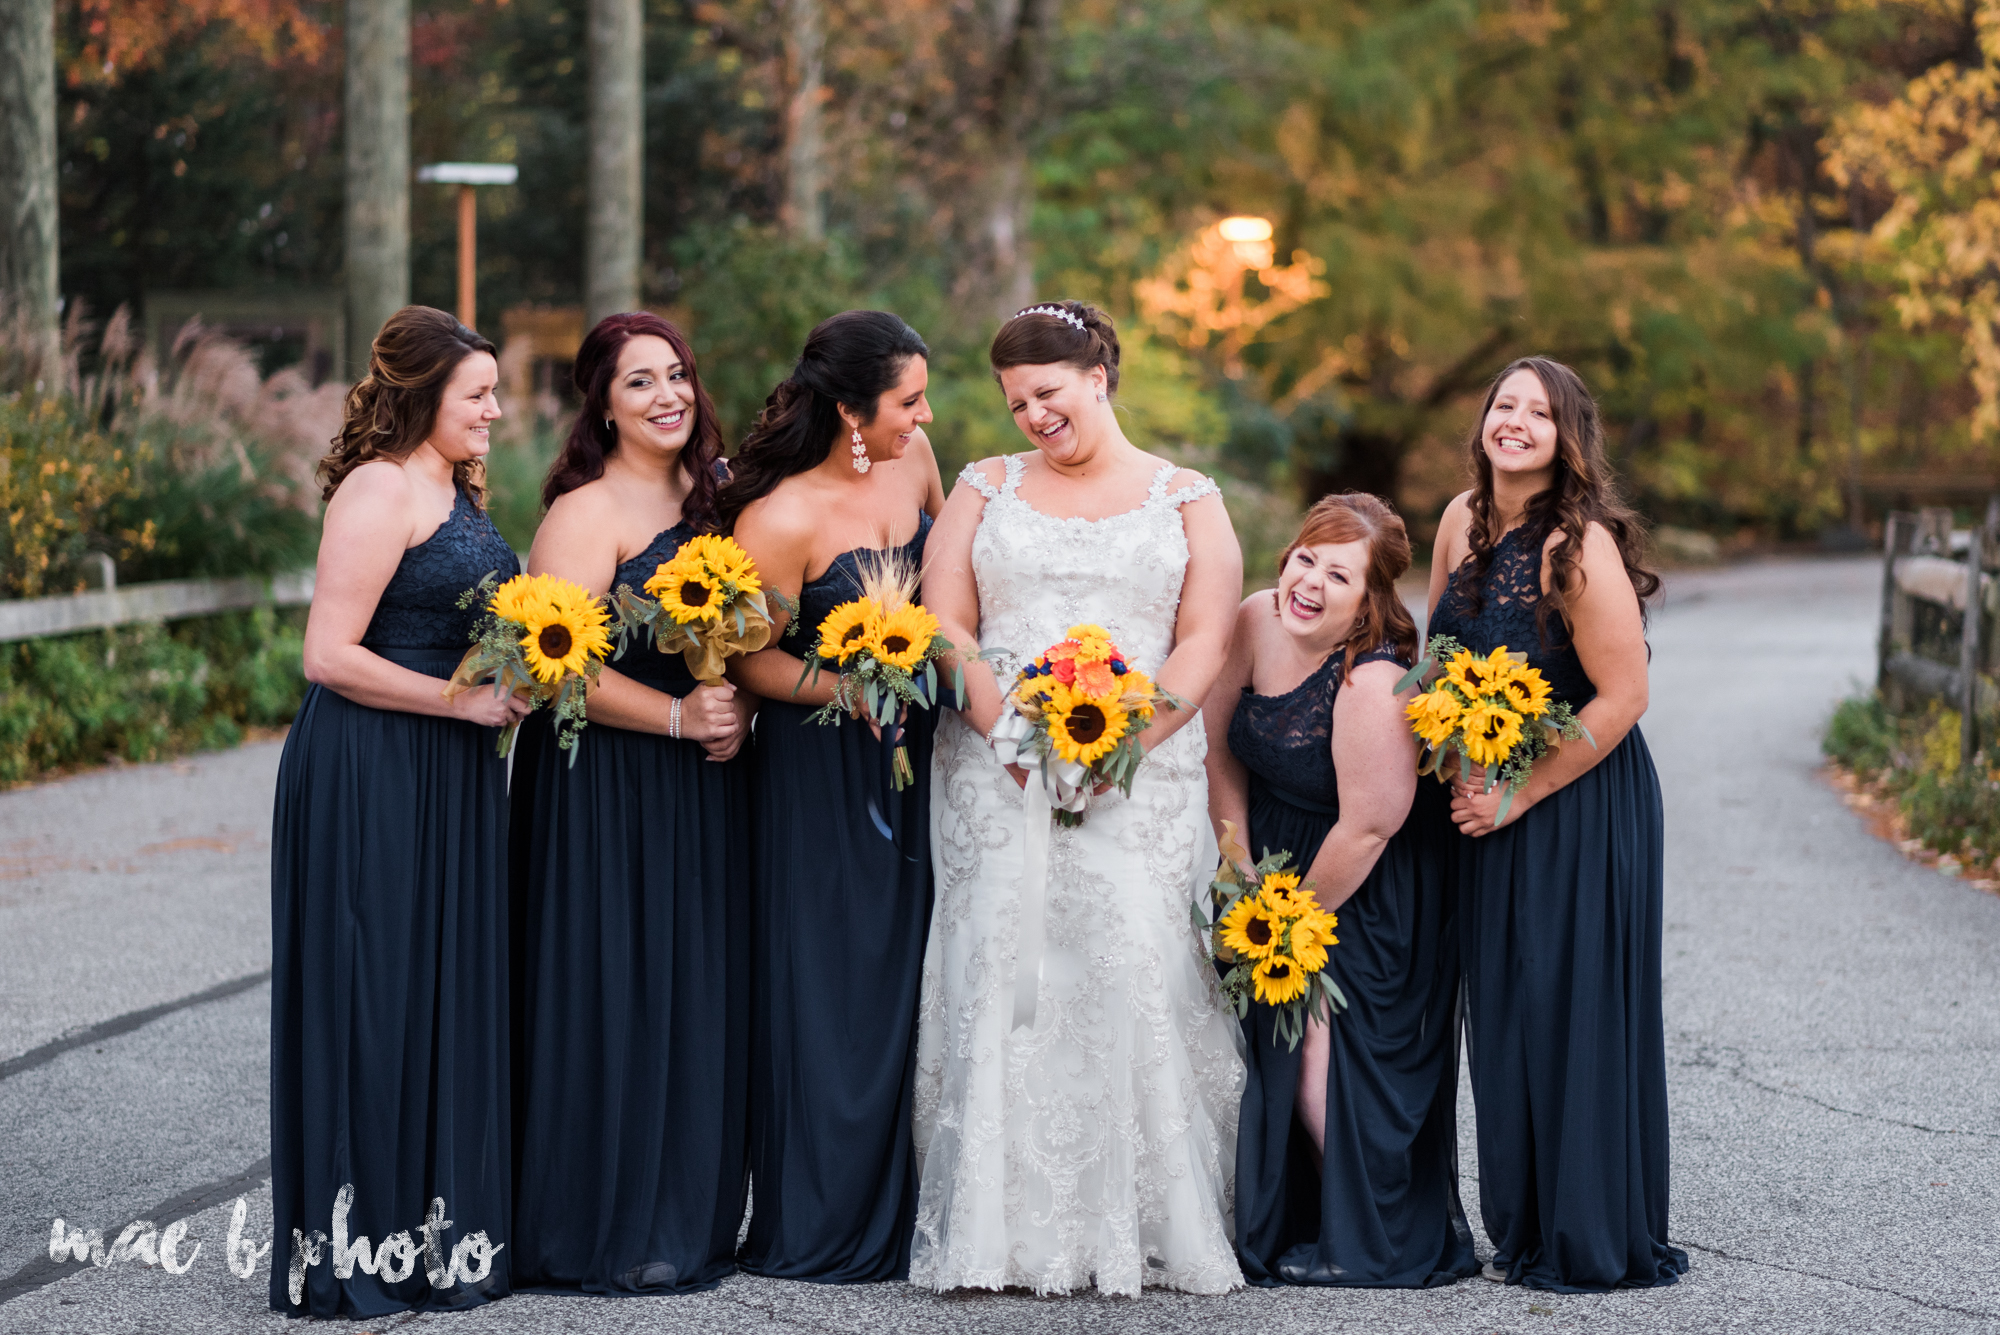 kaylynn & matt's fall zoo wedding at the cleveland metroparks zoo in cleveland ohio photographed by mae b photo-48.jpg